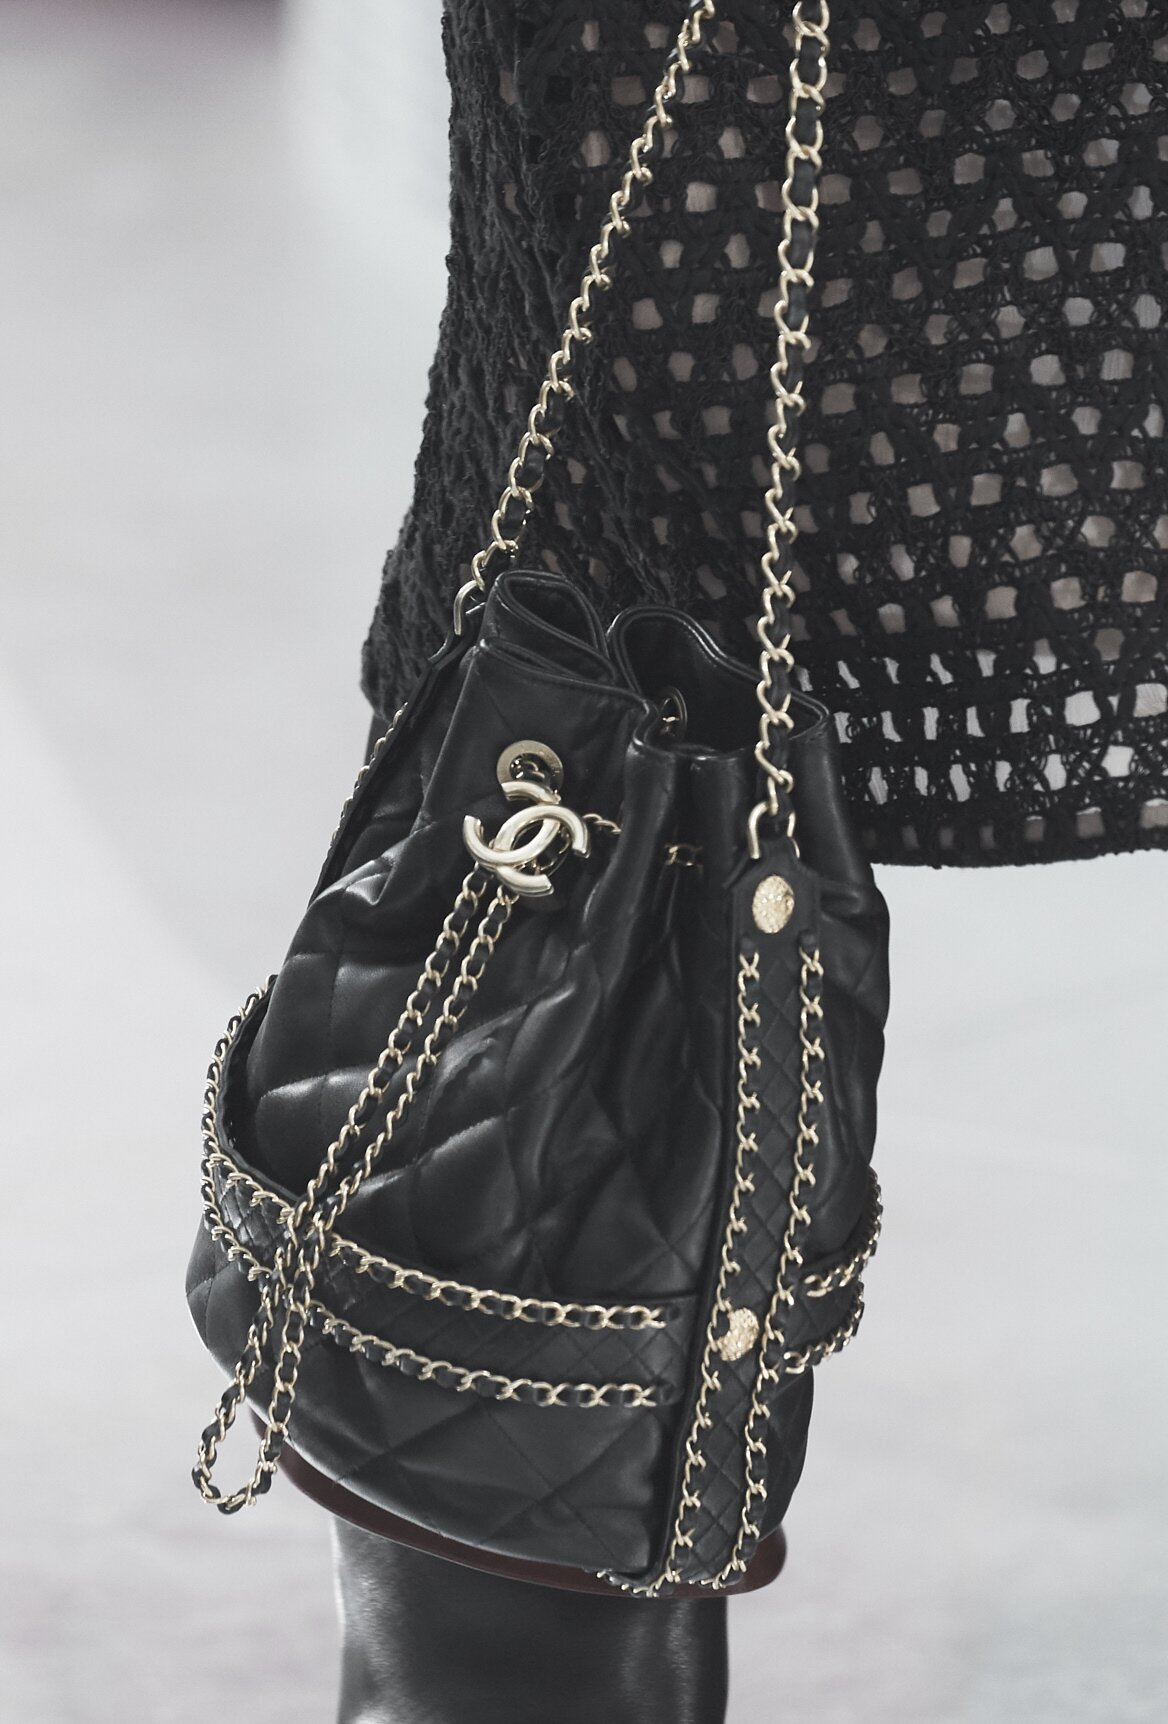 Woman Handbag 2020 Chanel